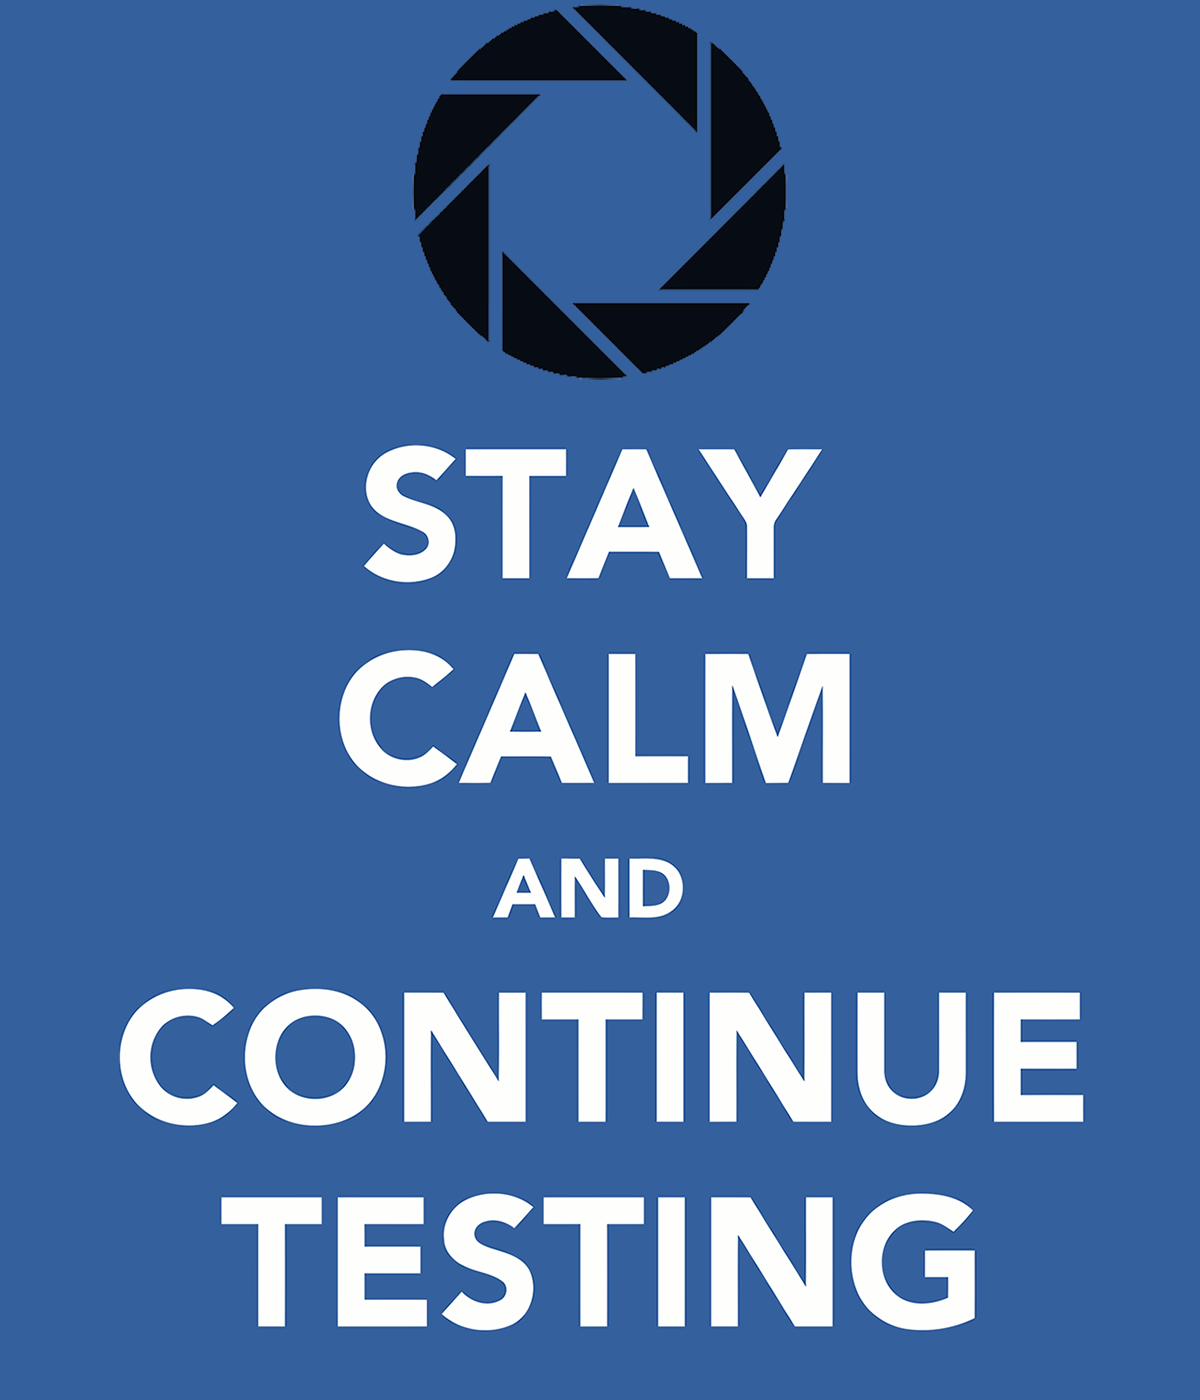 aperture_science_propaganda_by_rocketjumper35-d46uj9y